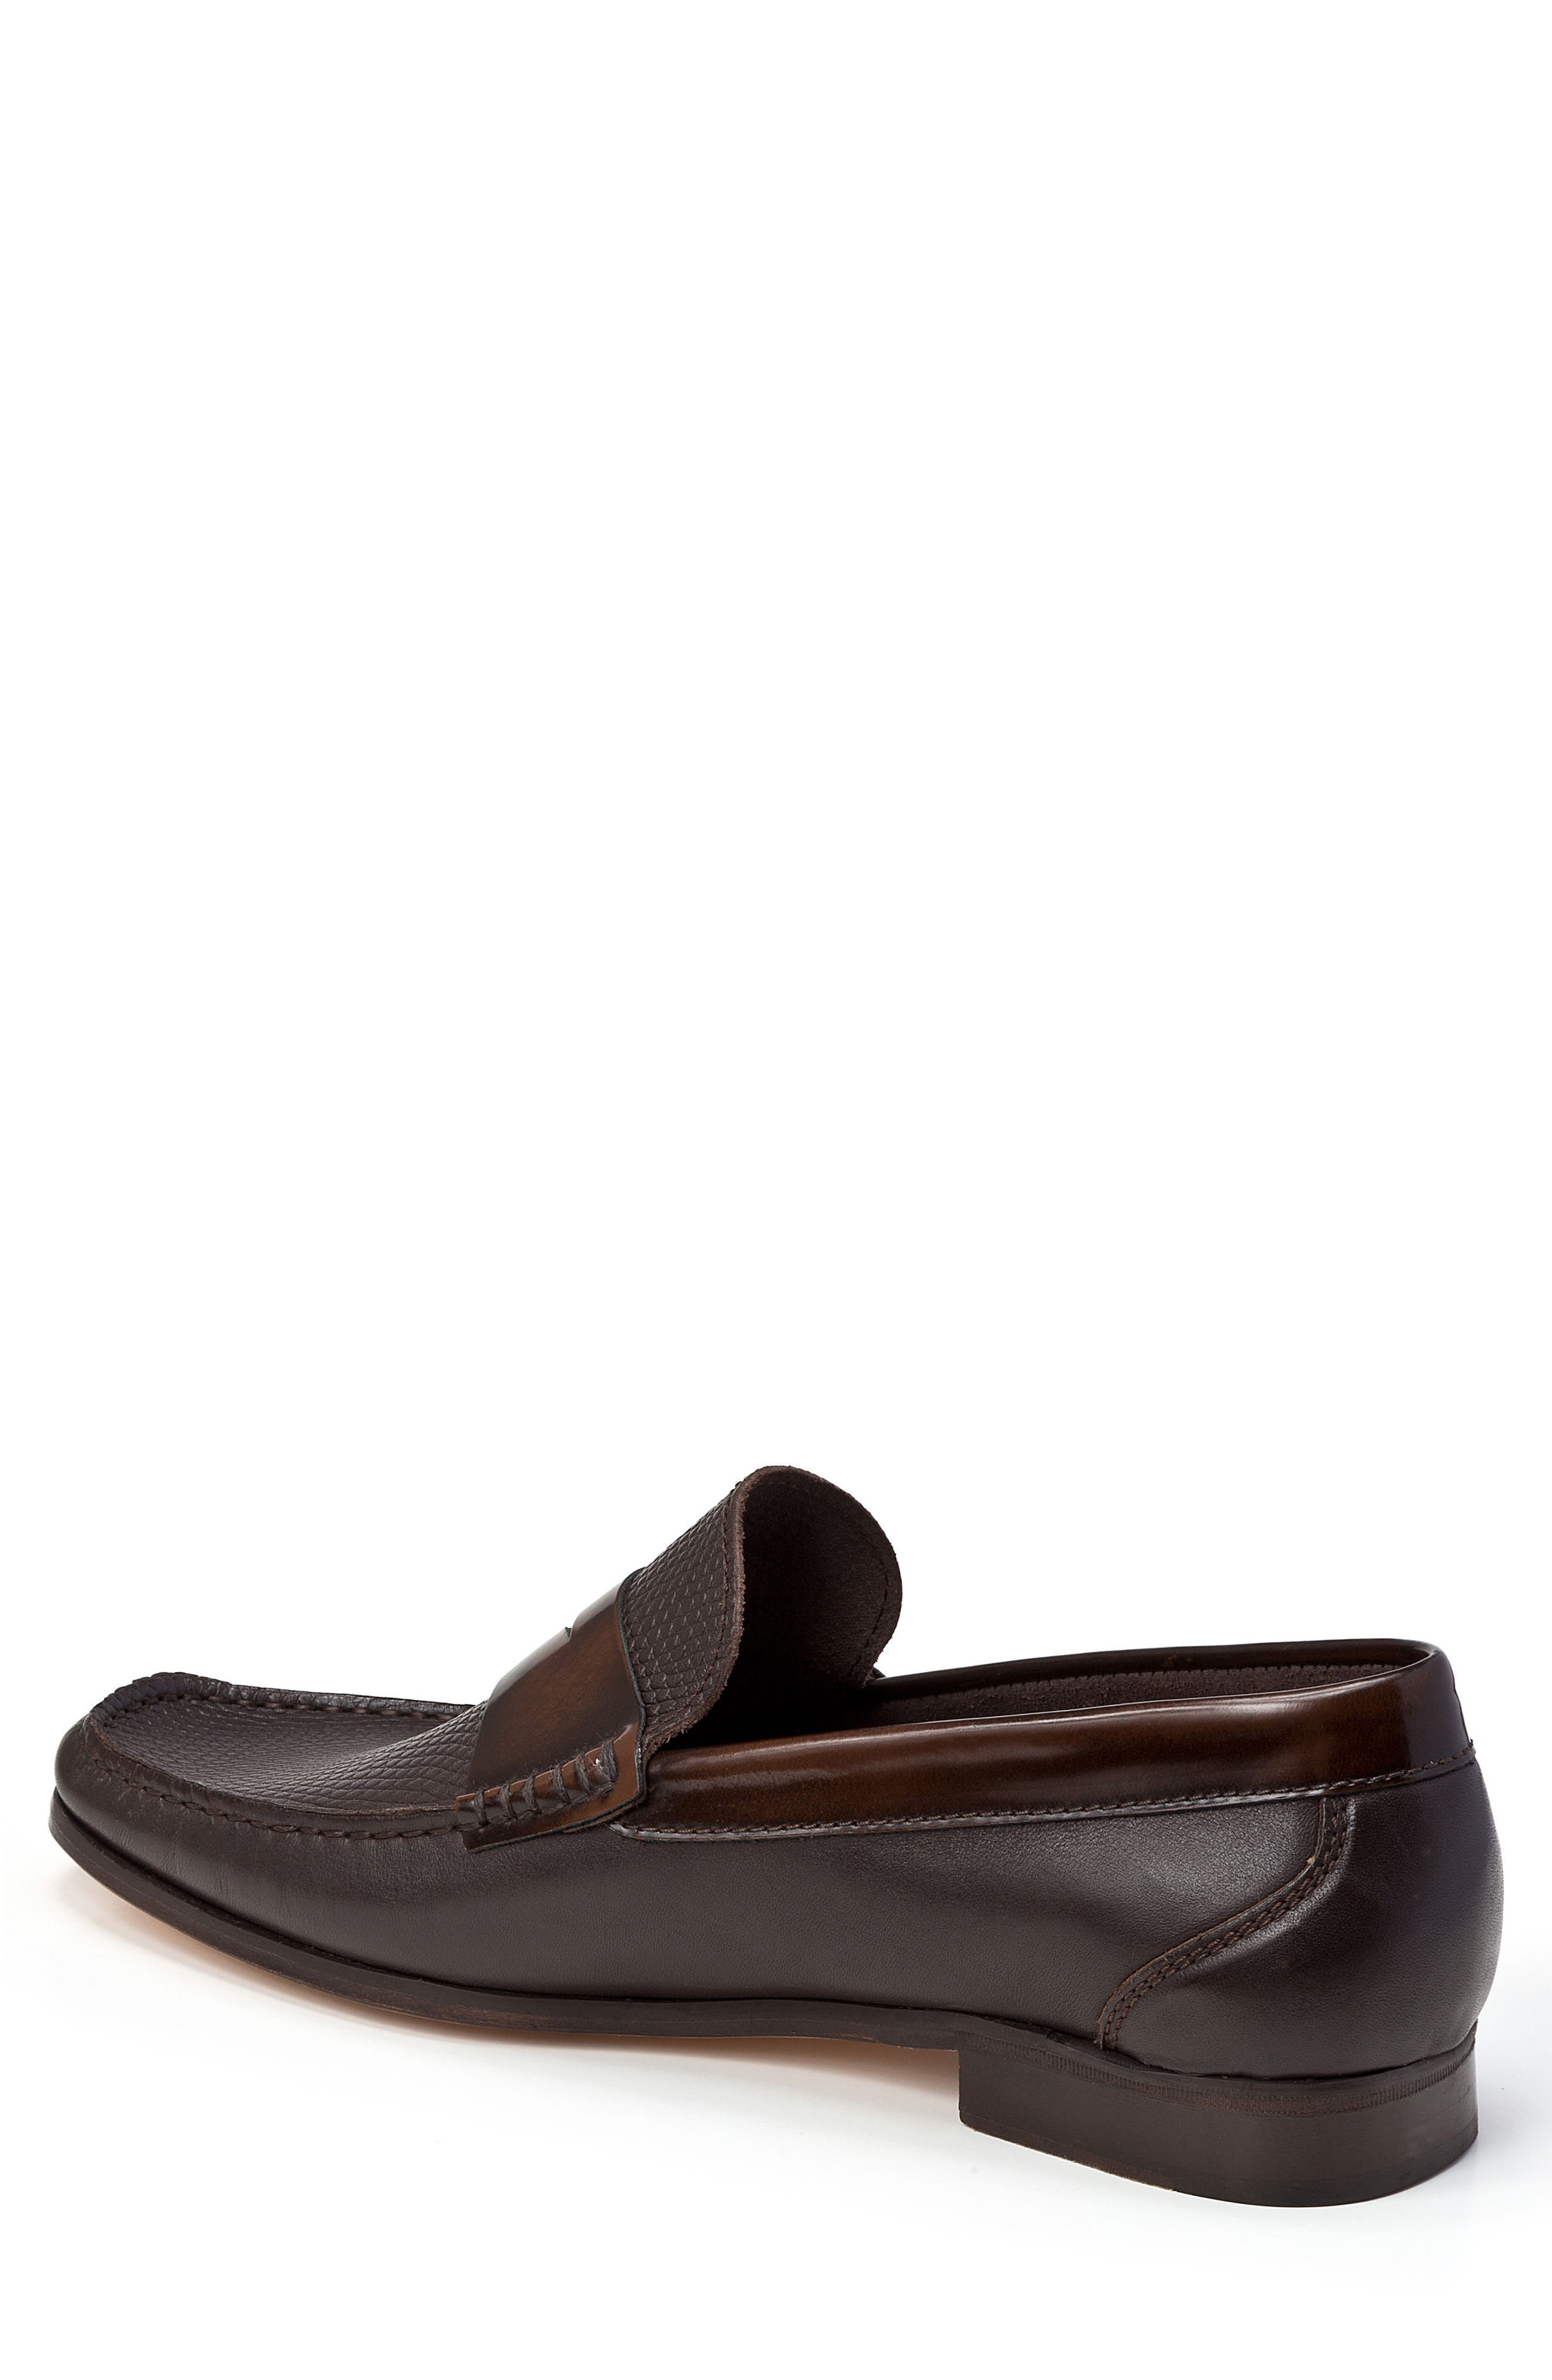 Bilbao Pebble Embossed Penny Loafer,                             Alternate thumbnail 2, color,                             BROWN